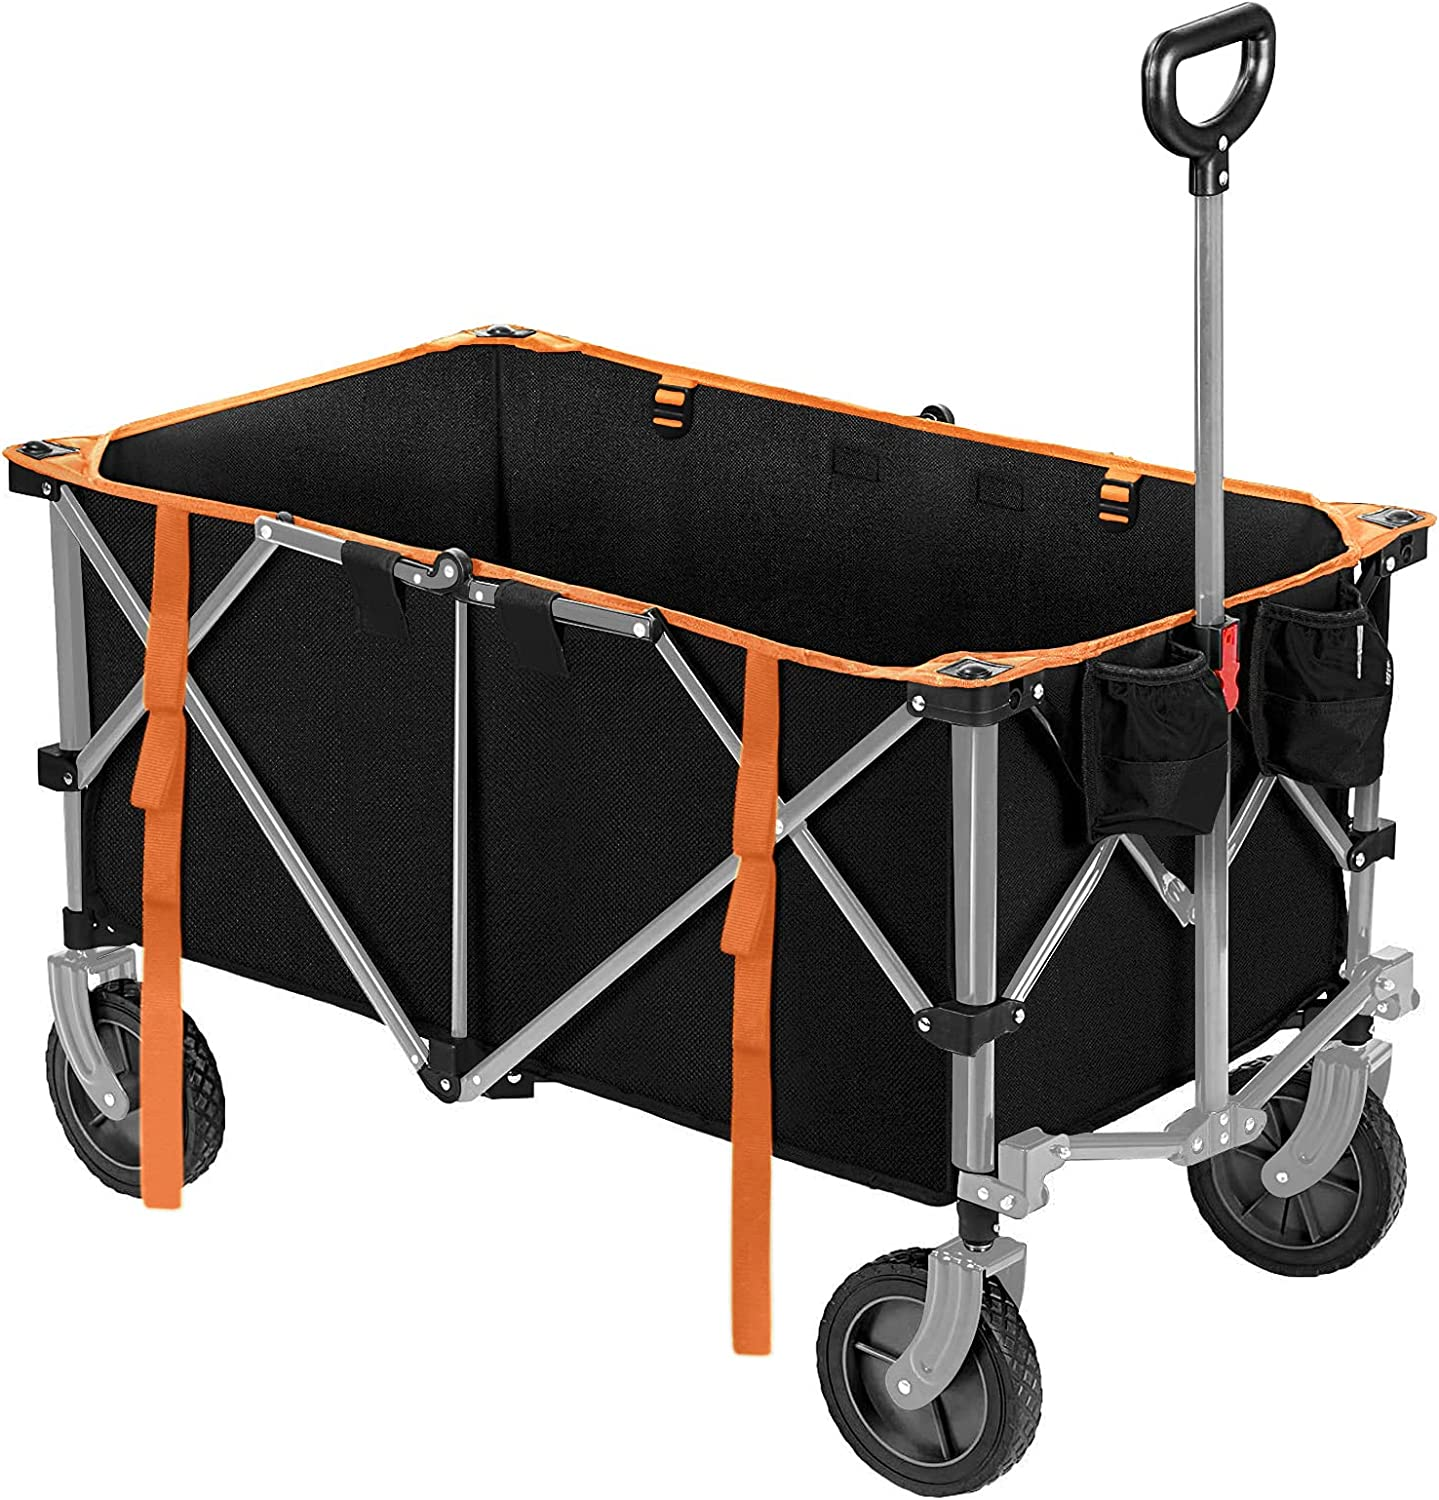 ROMISS Folding Wagon Large Collapsible Sales Free Shipping New Ga Capacity Utility